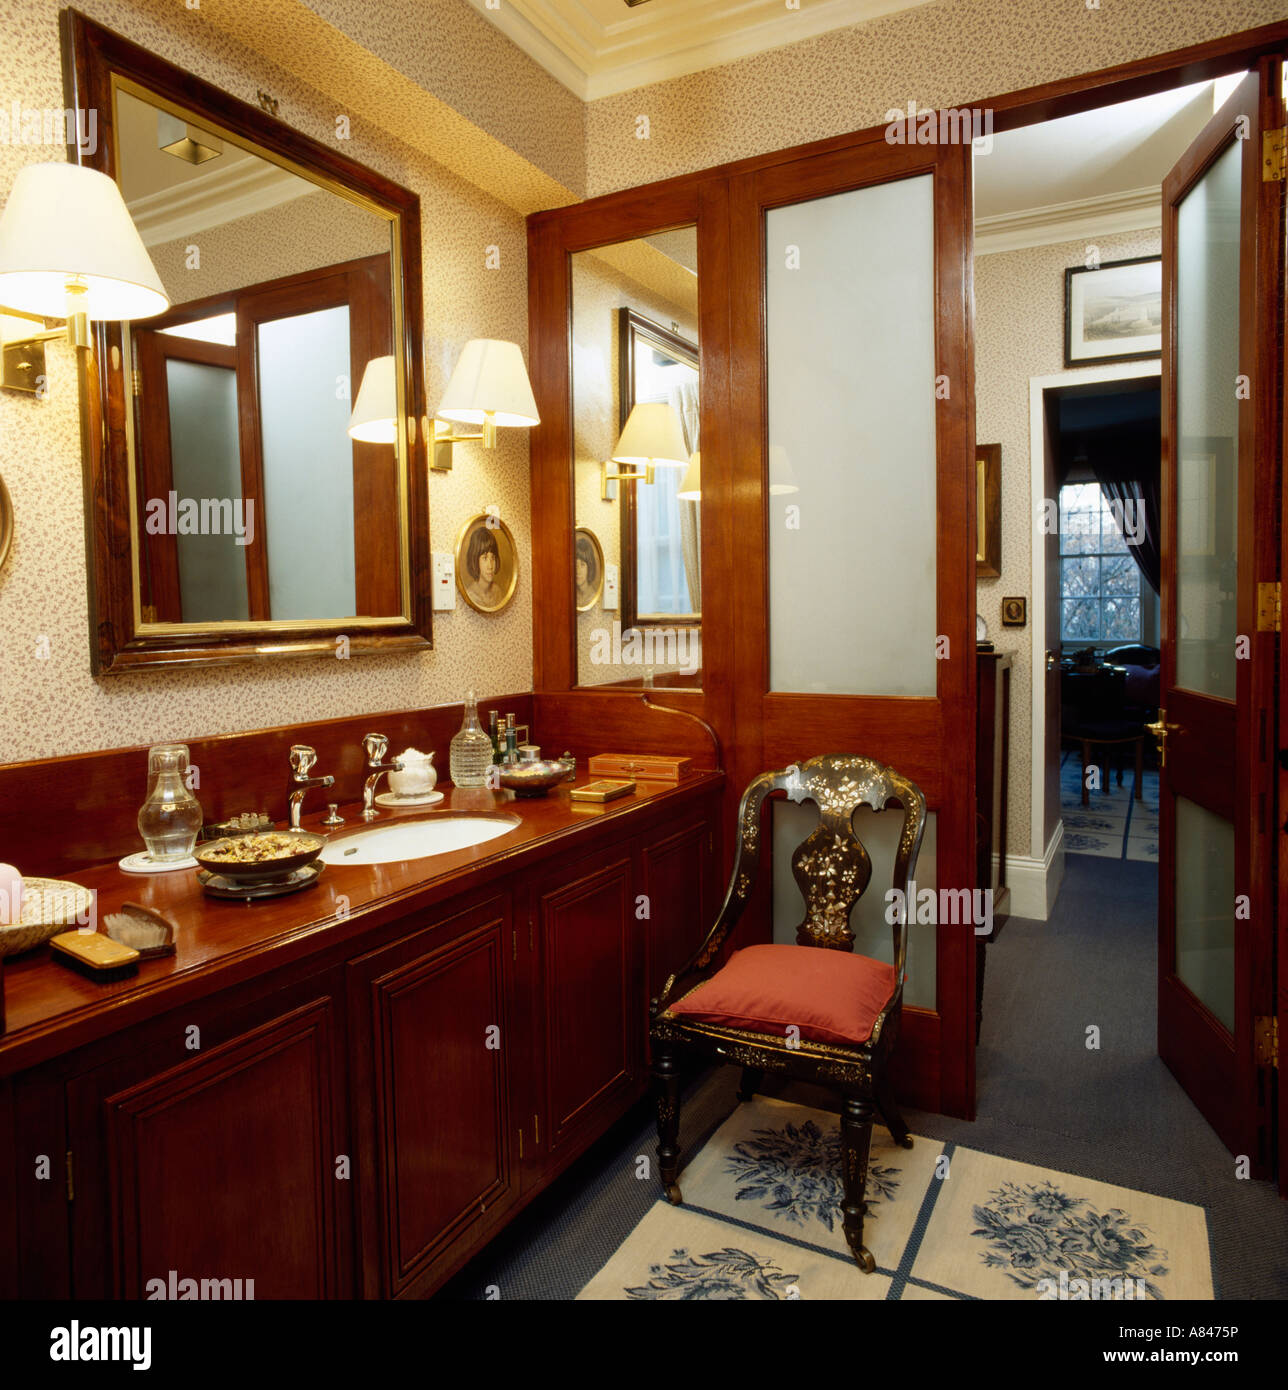 Traditional bathroom with wall-lights on either side of large framed ...